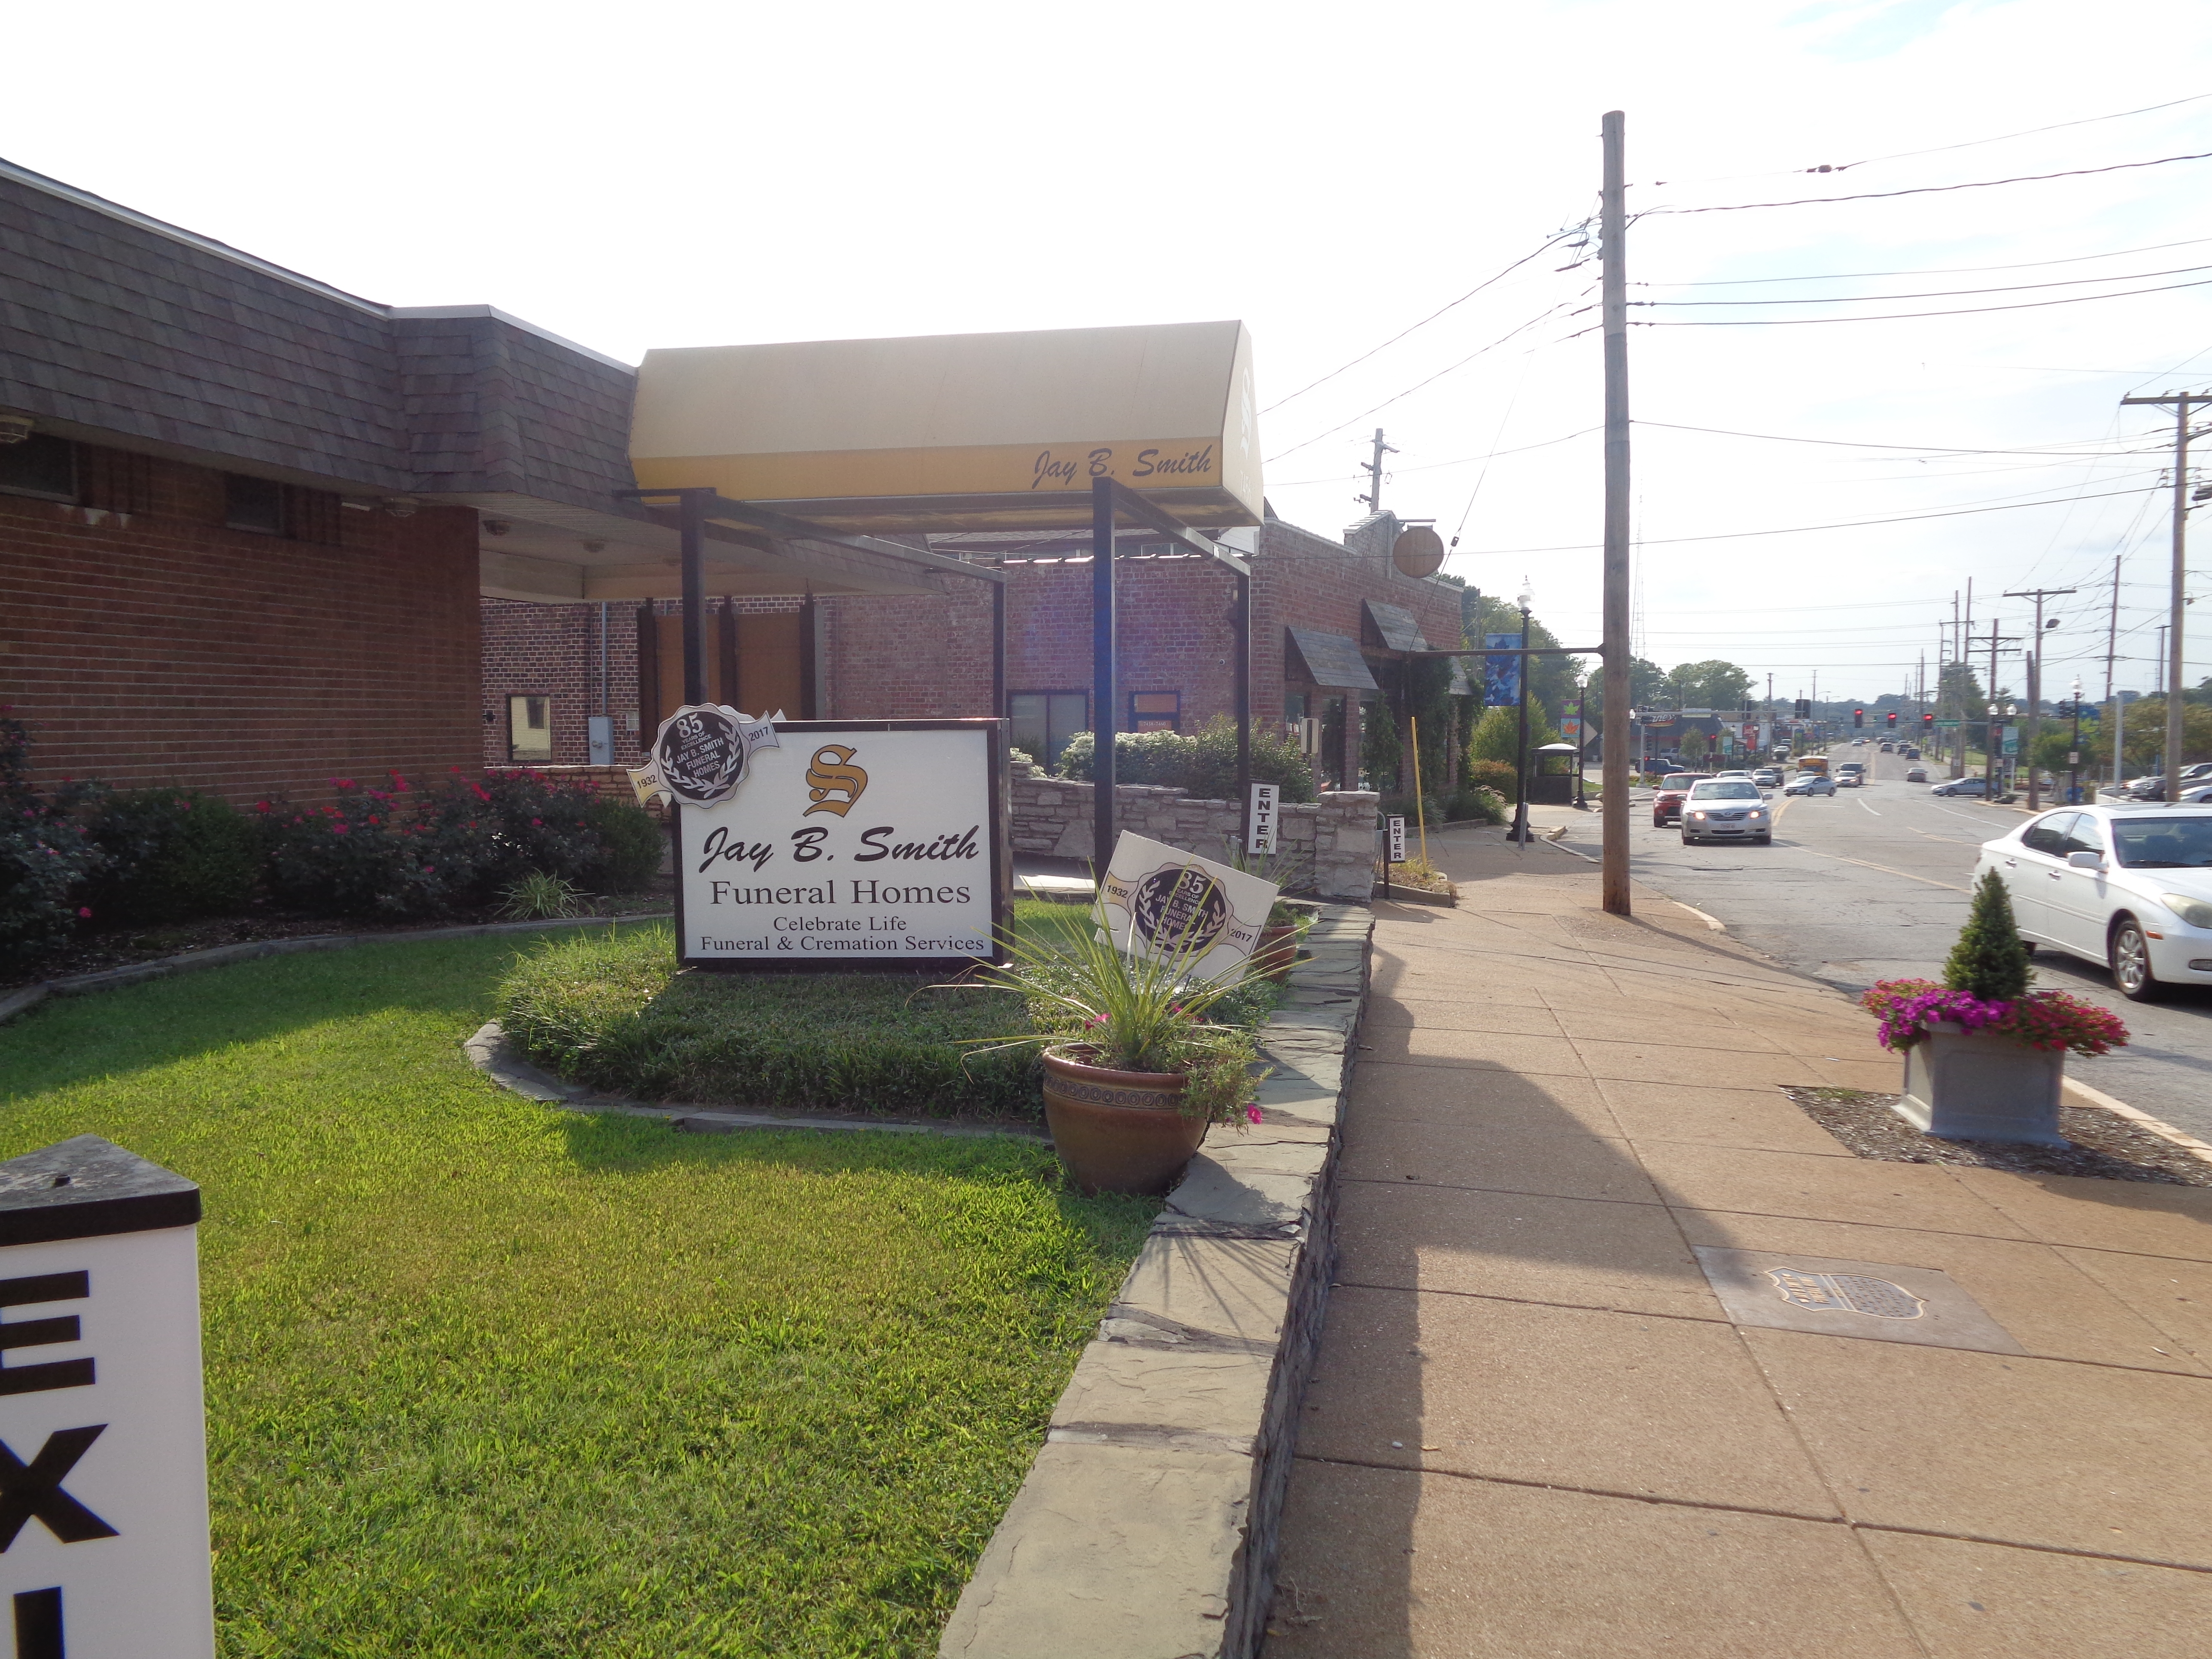 Jay B. Smith Funeral Home